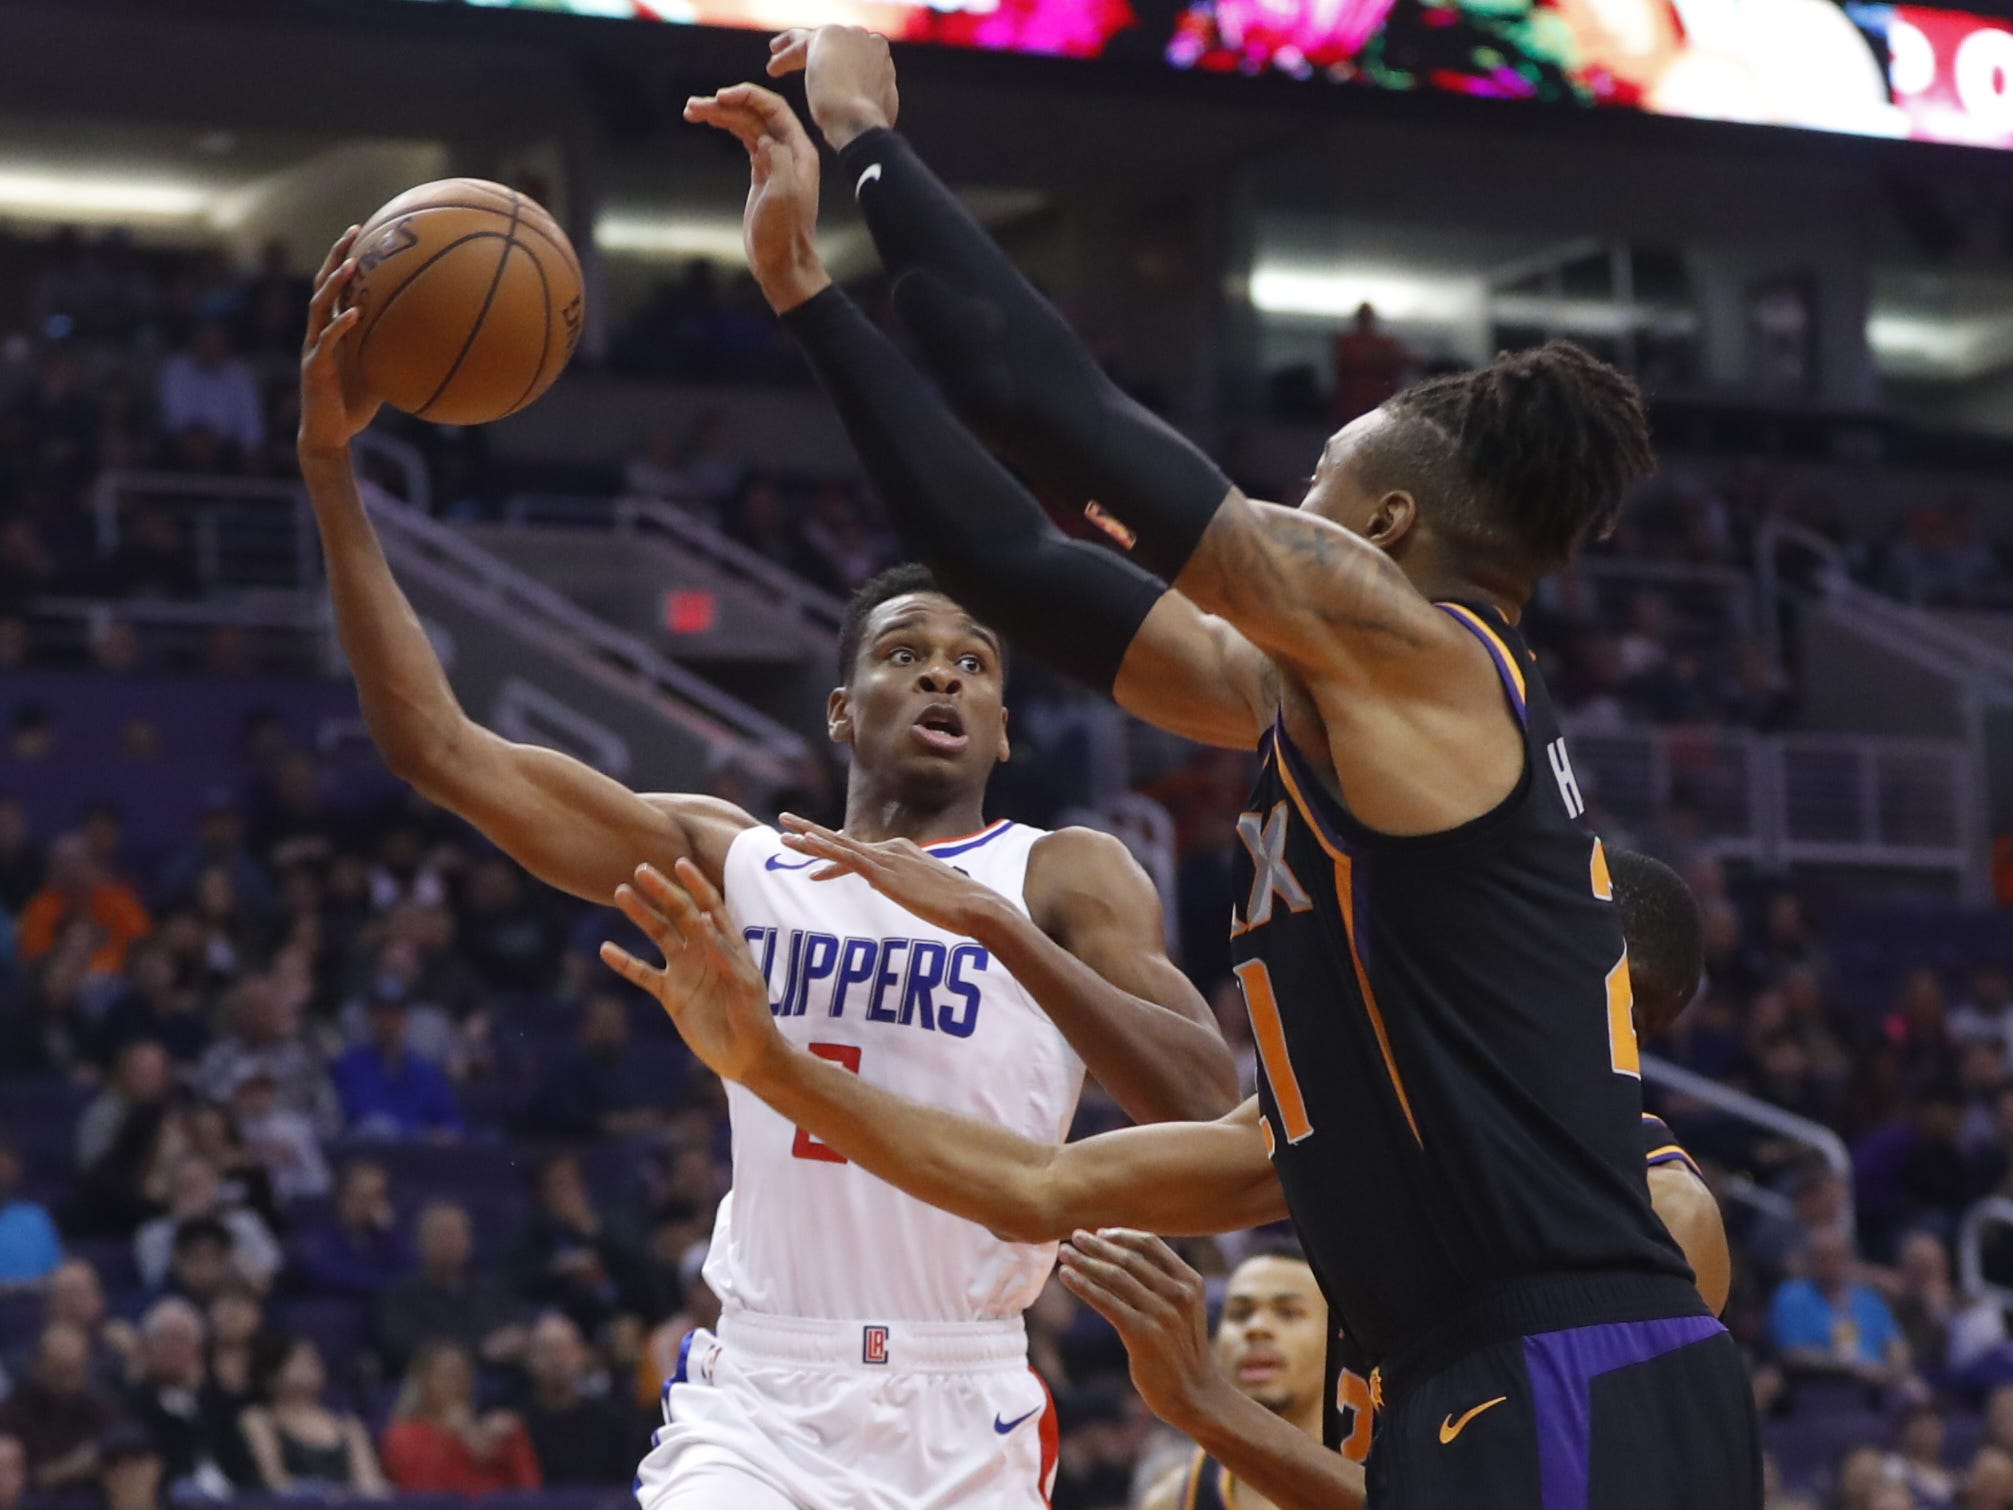 Suns' Richaun Holmes (21) defends Clippers' Shai Gilgeous-Alexander (2) during the second half at Talking Stick Resort Arena in Phoenix, Ariz. on January 4, 2019.